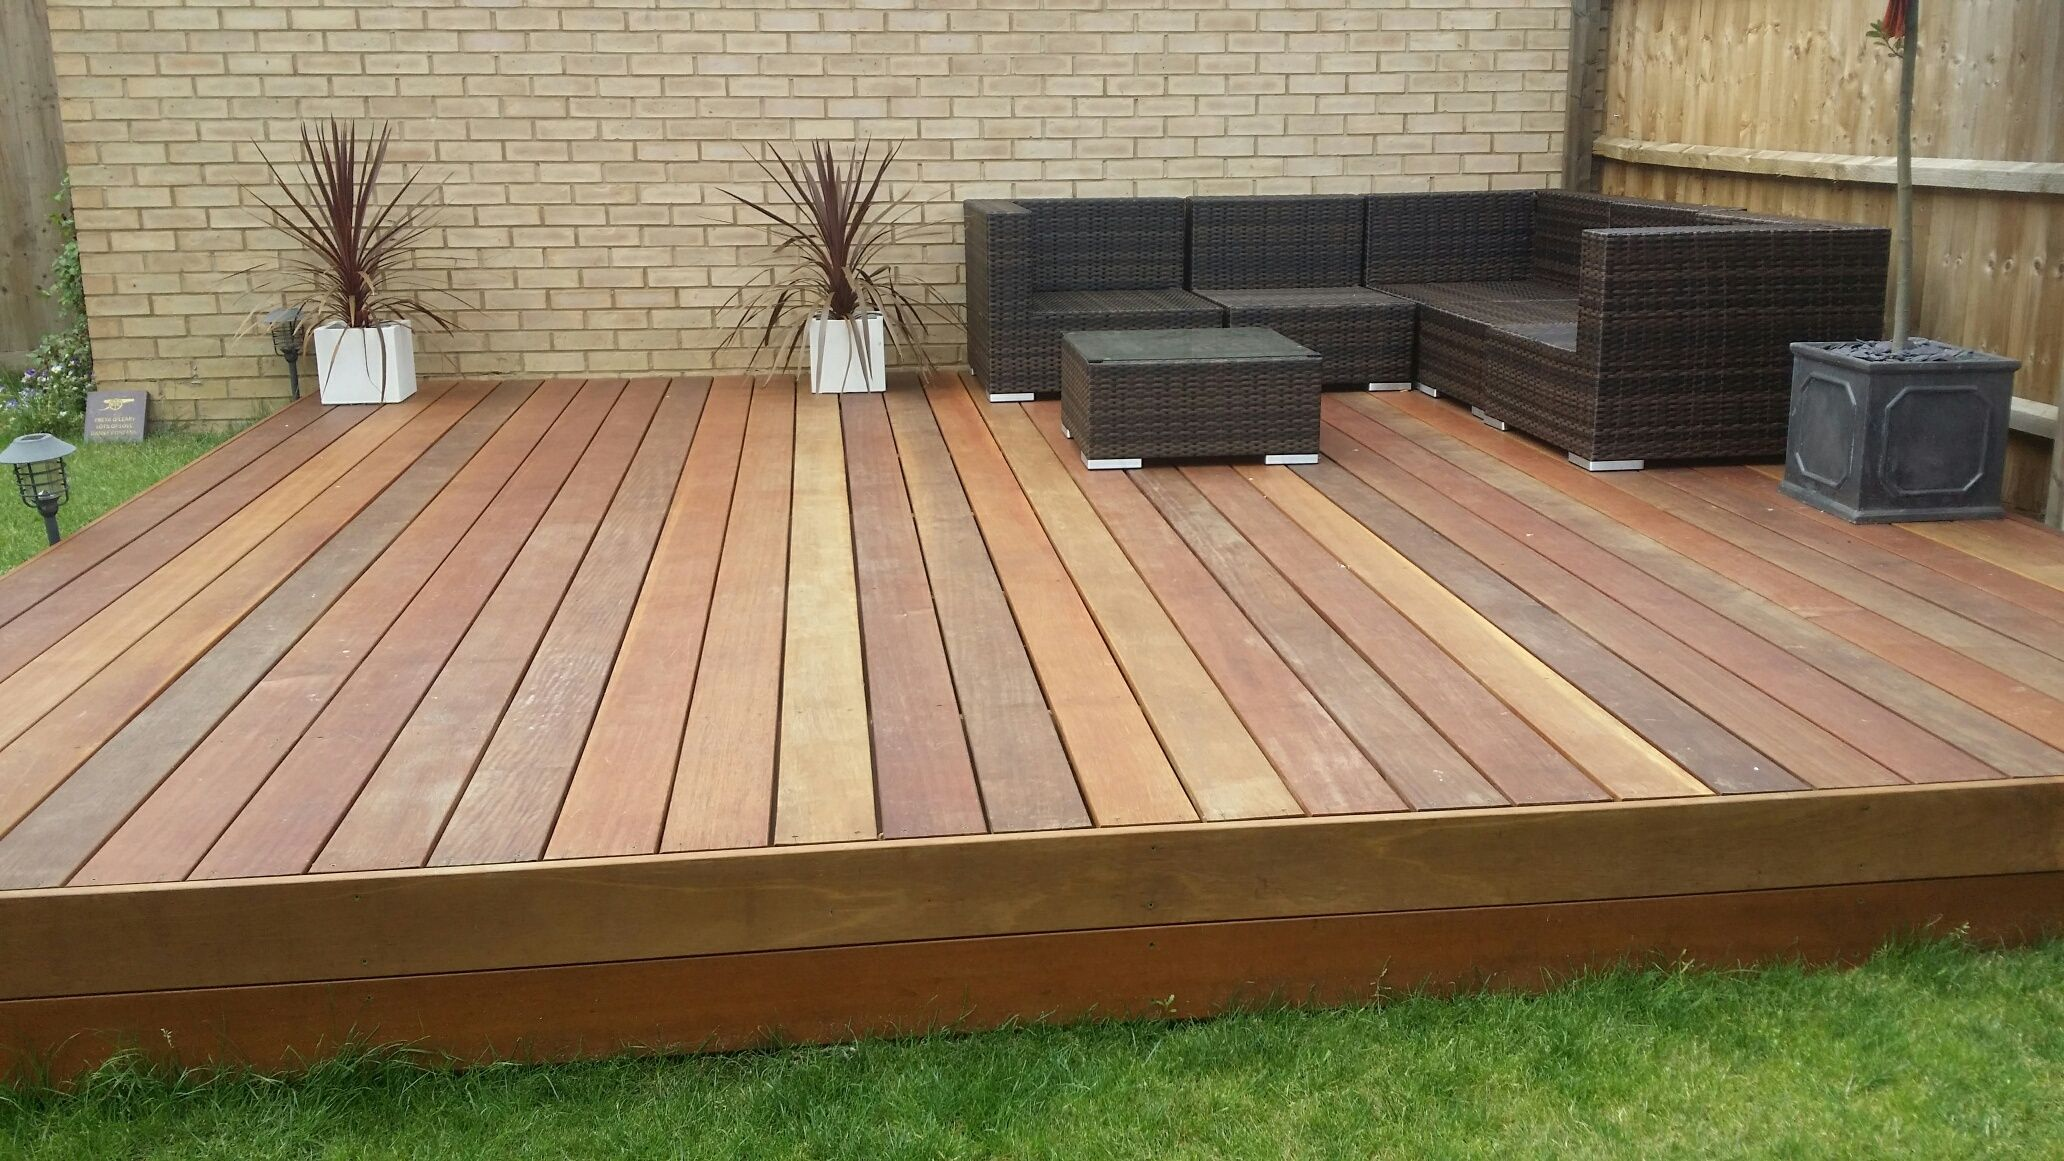 Raised decking ideas uk google search patio for Images of garden decking